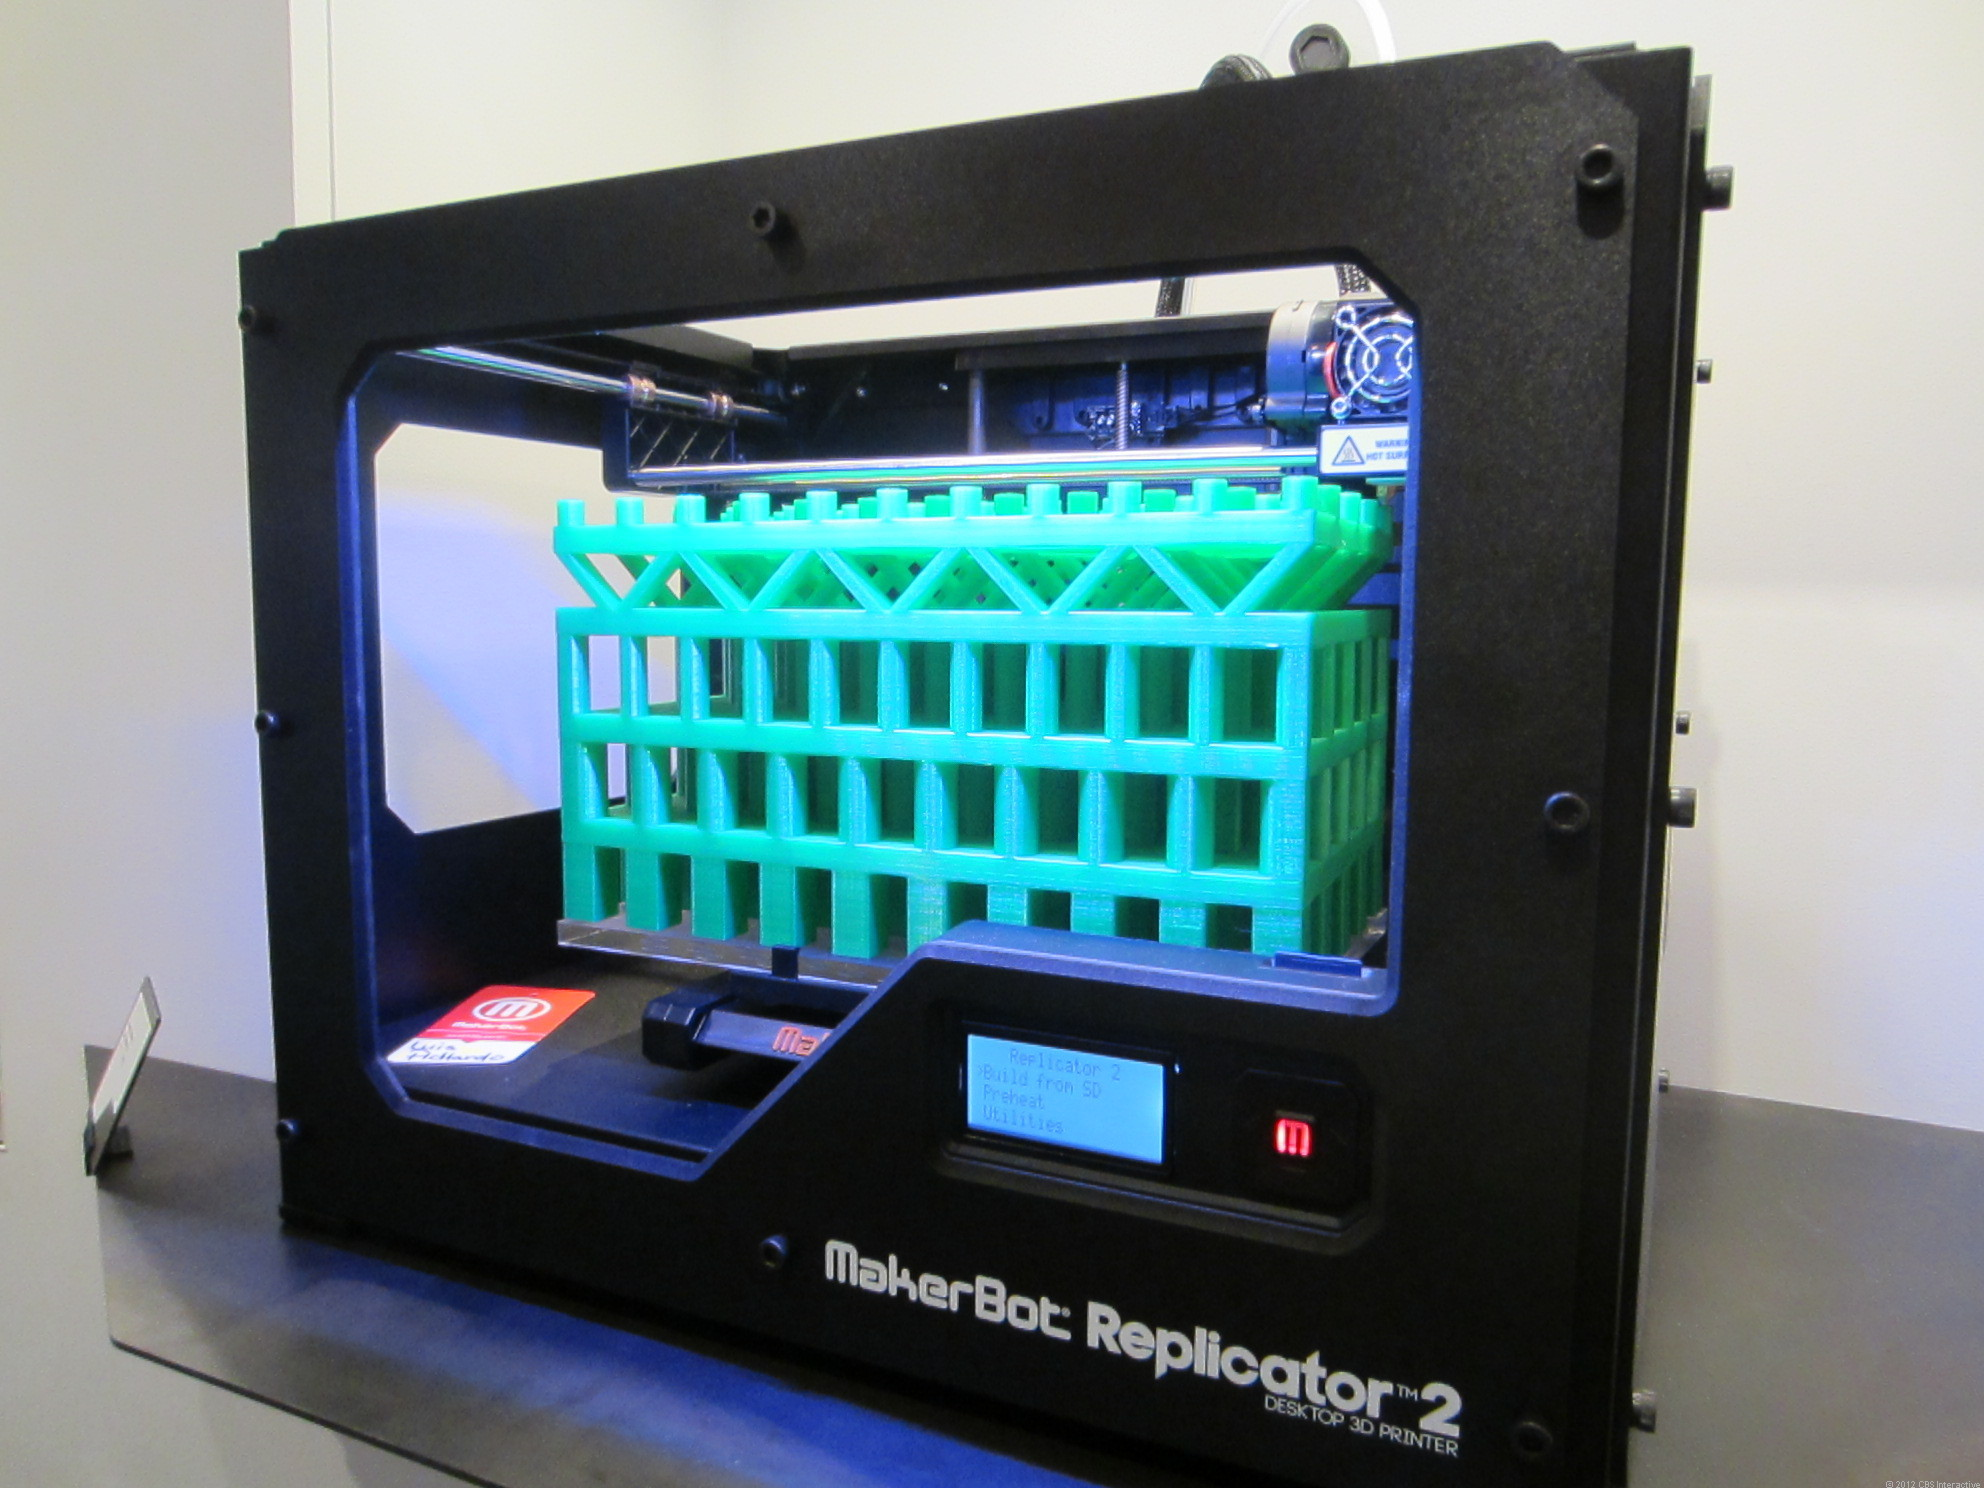 3D Printing: will it replace traditional manufacturing?